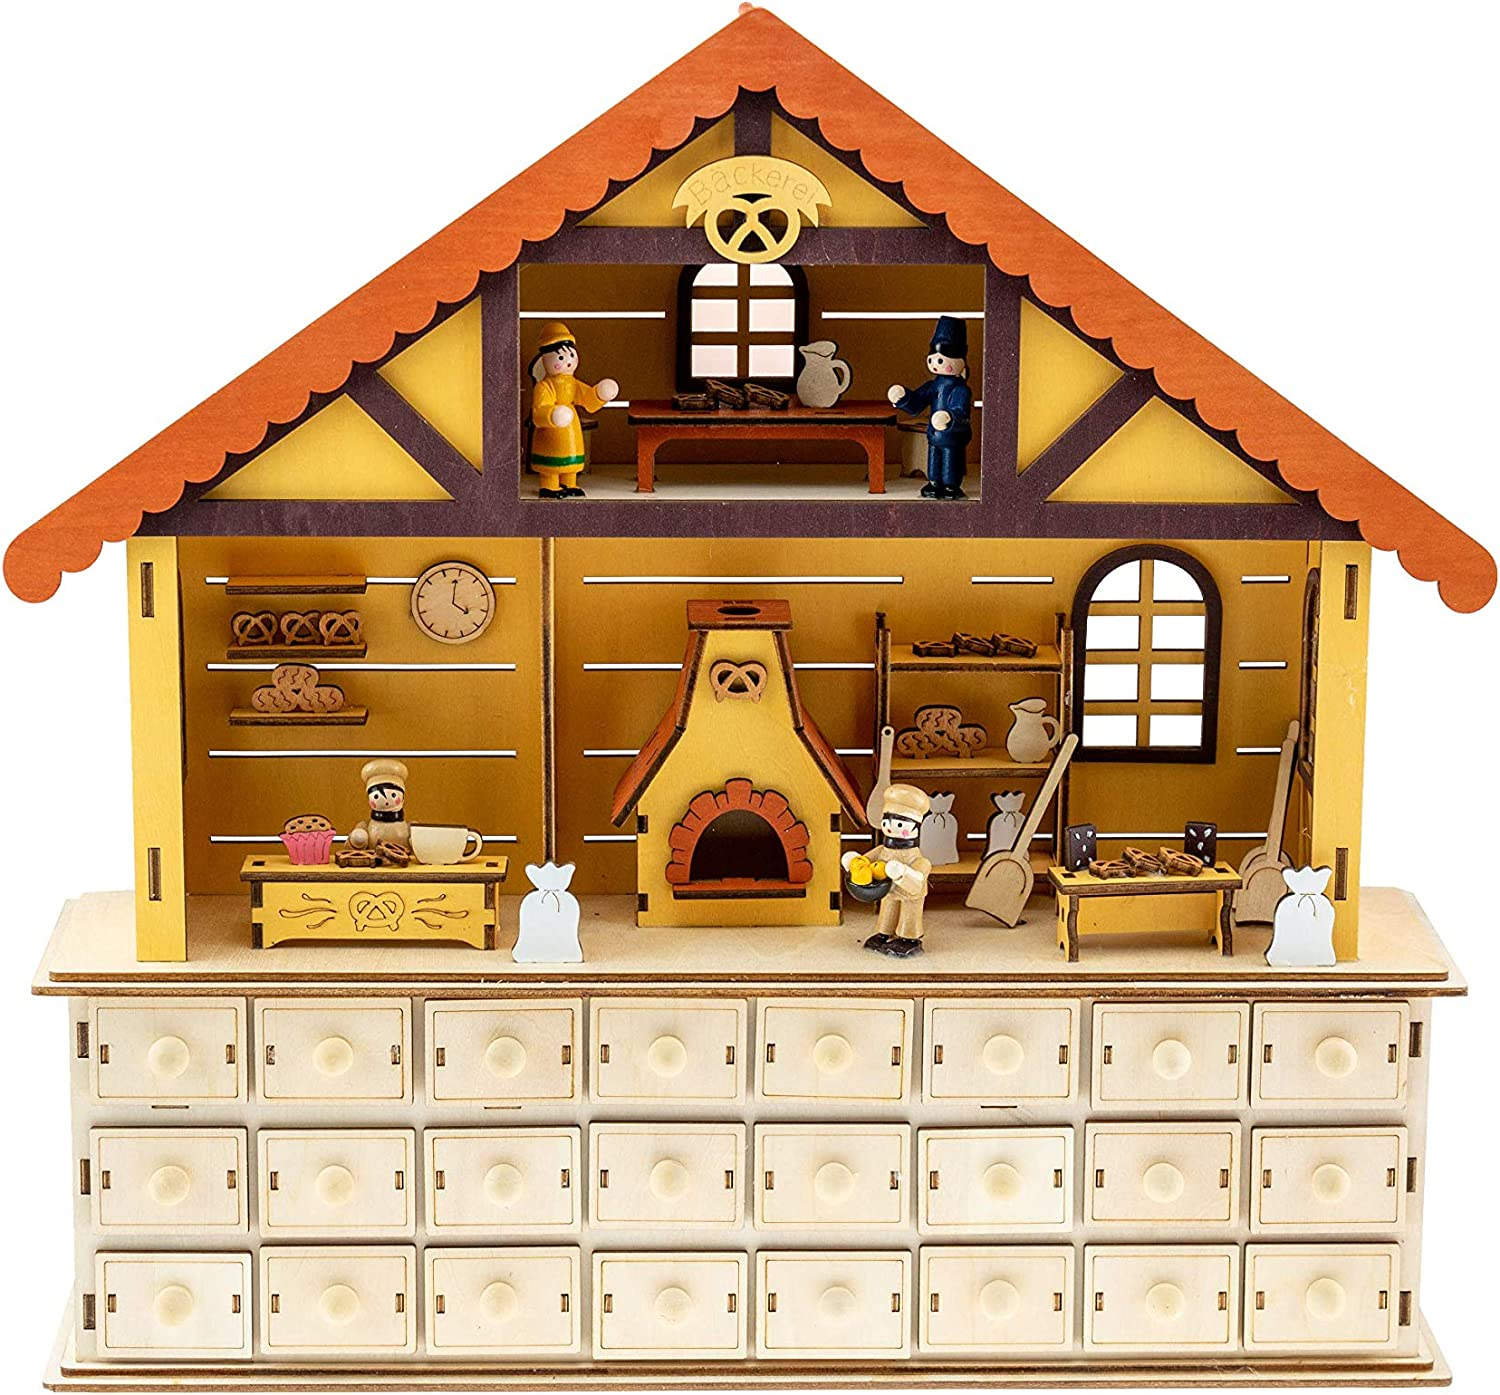 Clever Creations Cozy Bakers House Interior Advent Calendar | Working Drawers to Count Down Days Till Christmas | Perfect Decoration for that Holiday Cheer| Battery Operated | Measures 17